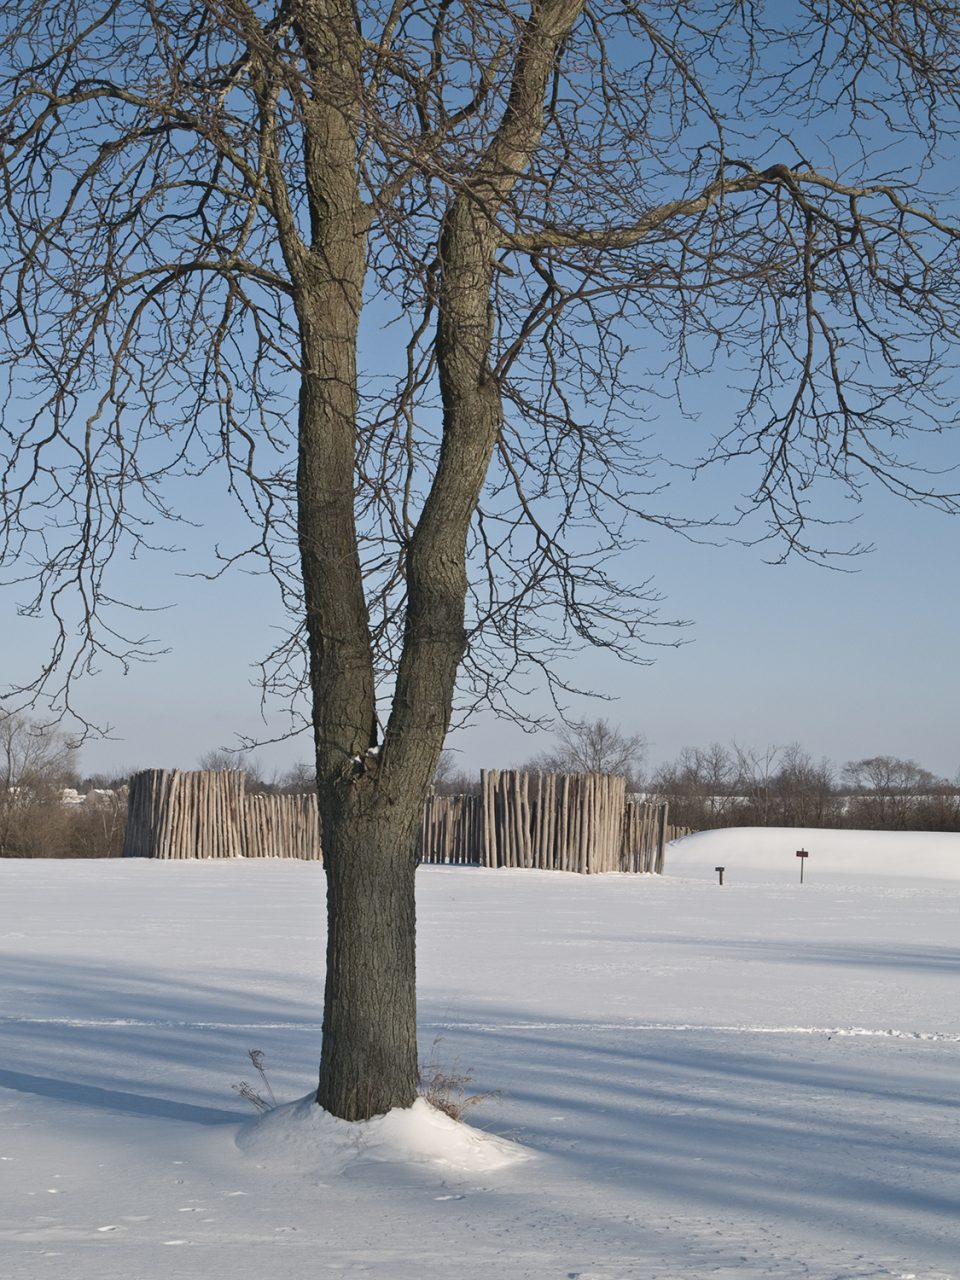 A look at some of the reconstructed palisade wall at Aztalan Mound Site, Wisconsin